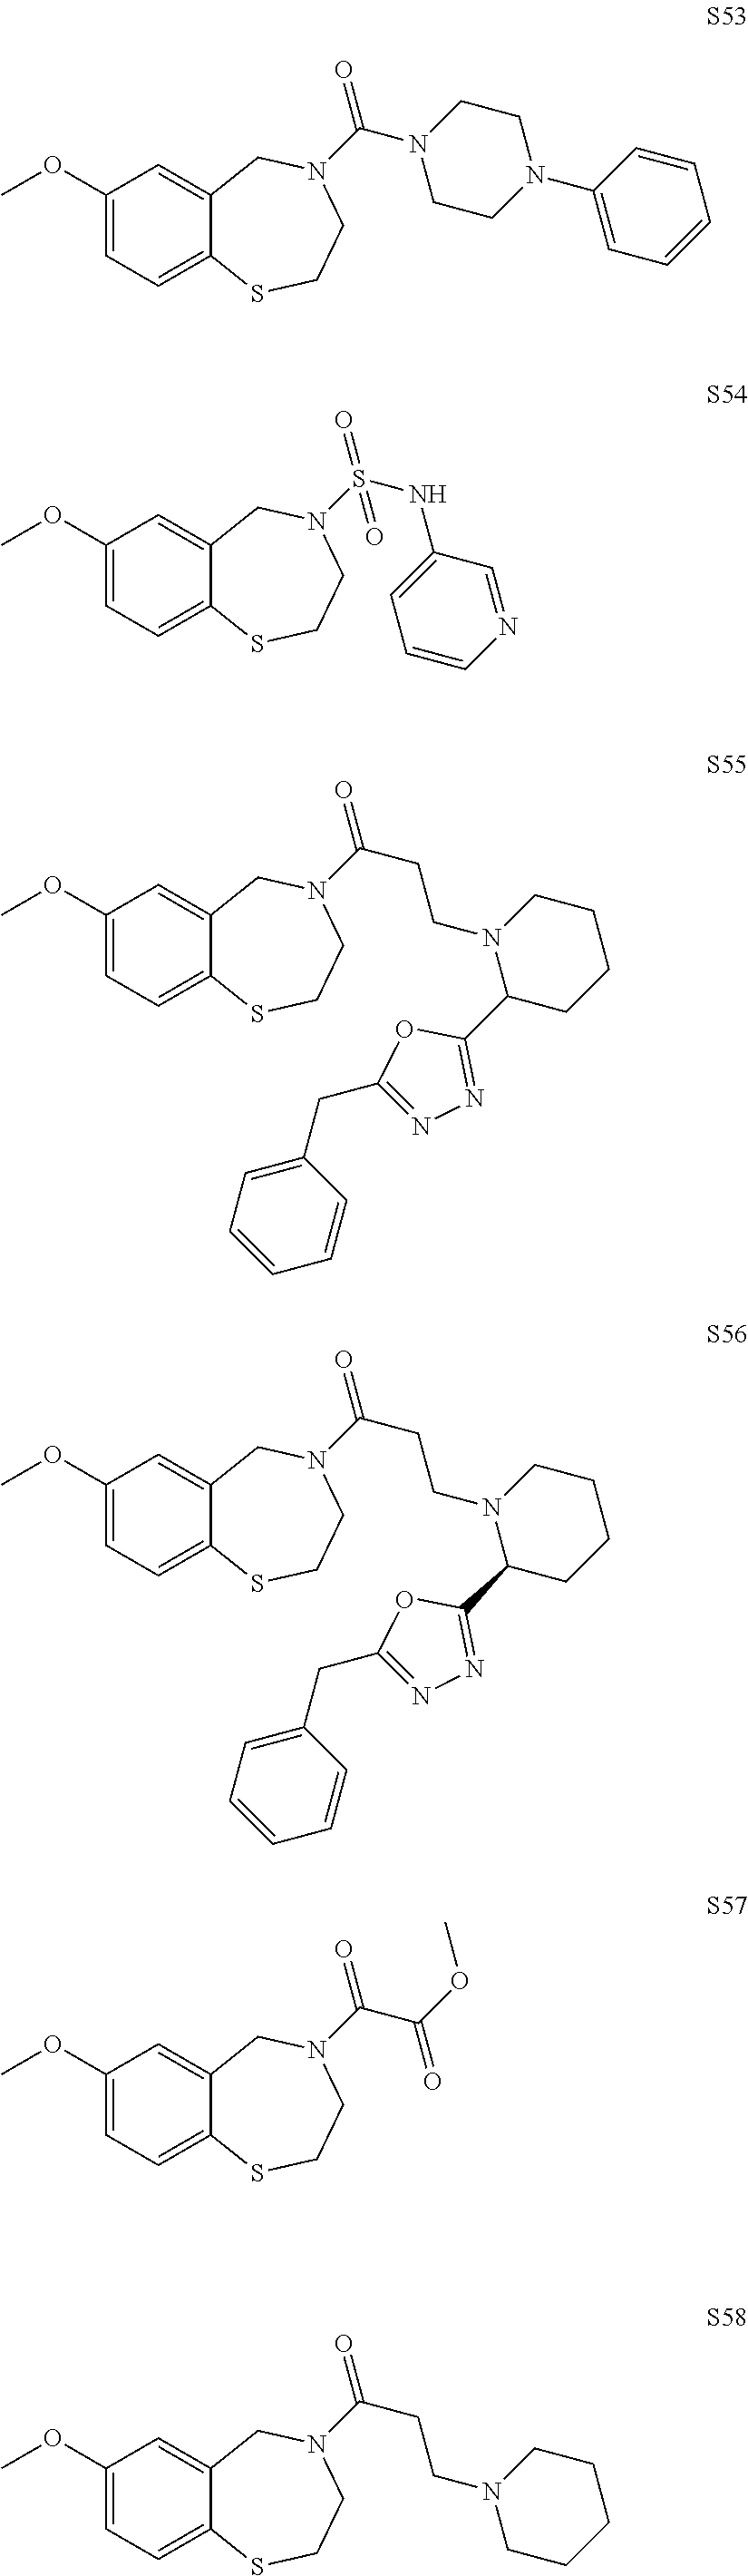 US8710045B2 - Agents for preventing and treating disorders